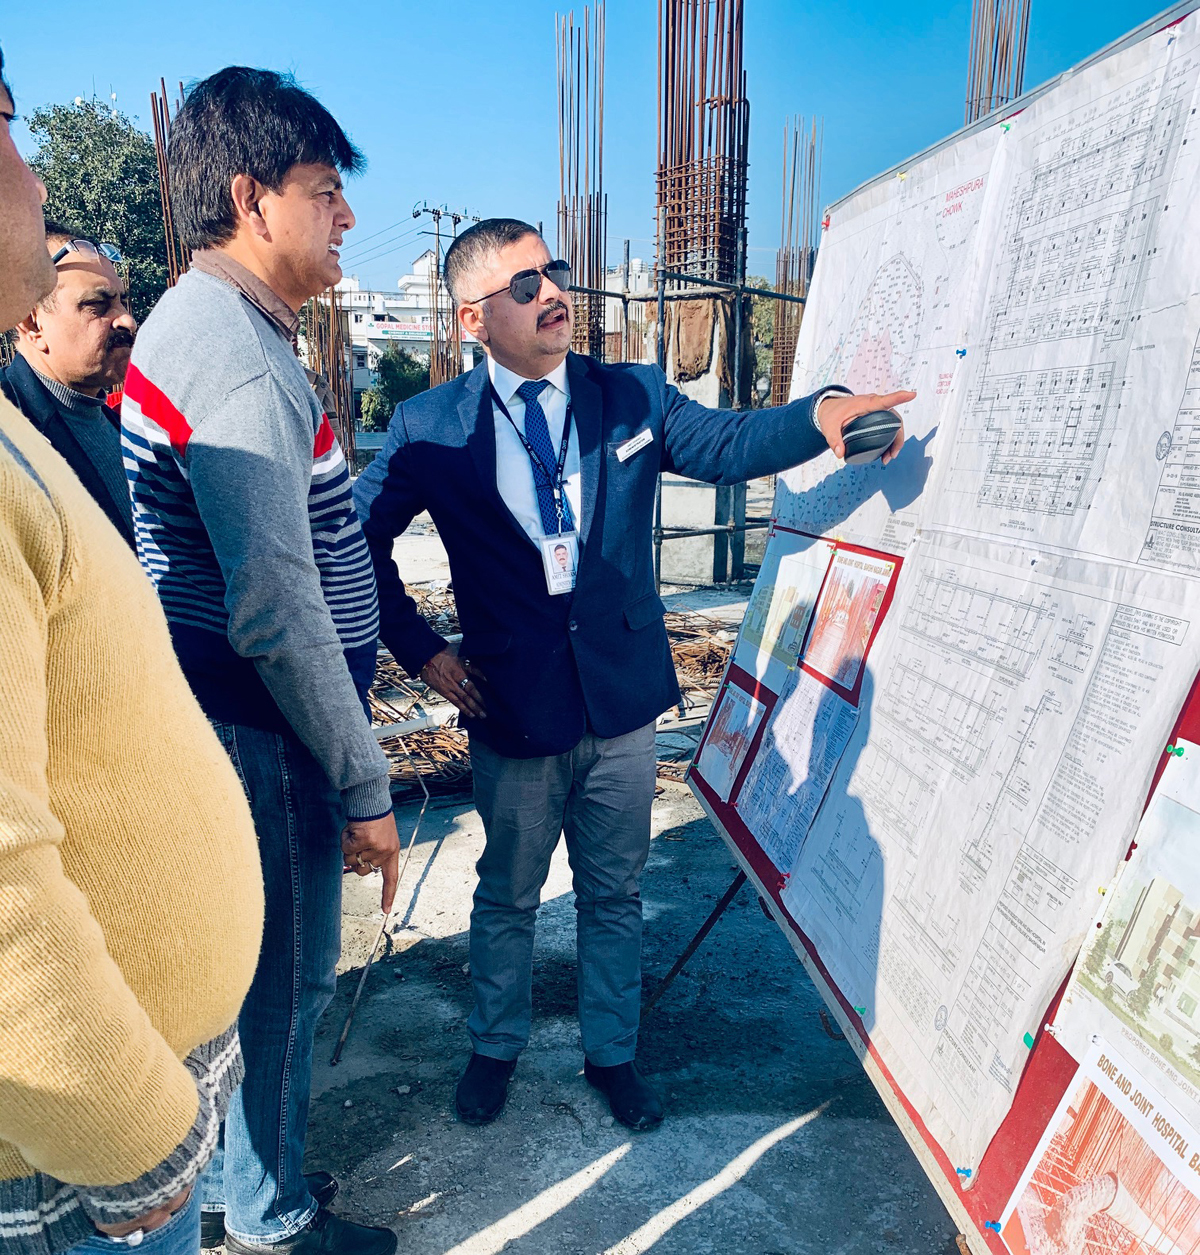 Administrator GMC and Associated Hospitals Jammu, Amit Sharma reviewing progress on construction work of Bone & Joints Hospital in the premises of CD Hospital, Jammu.